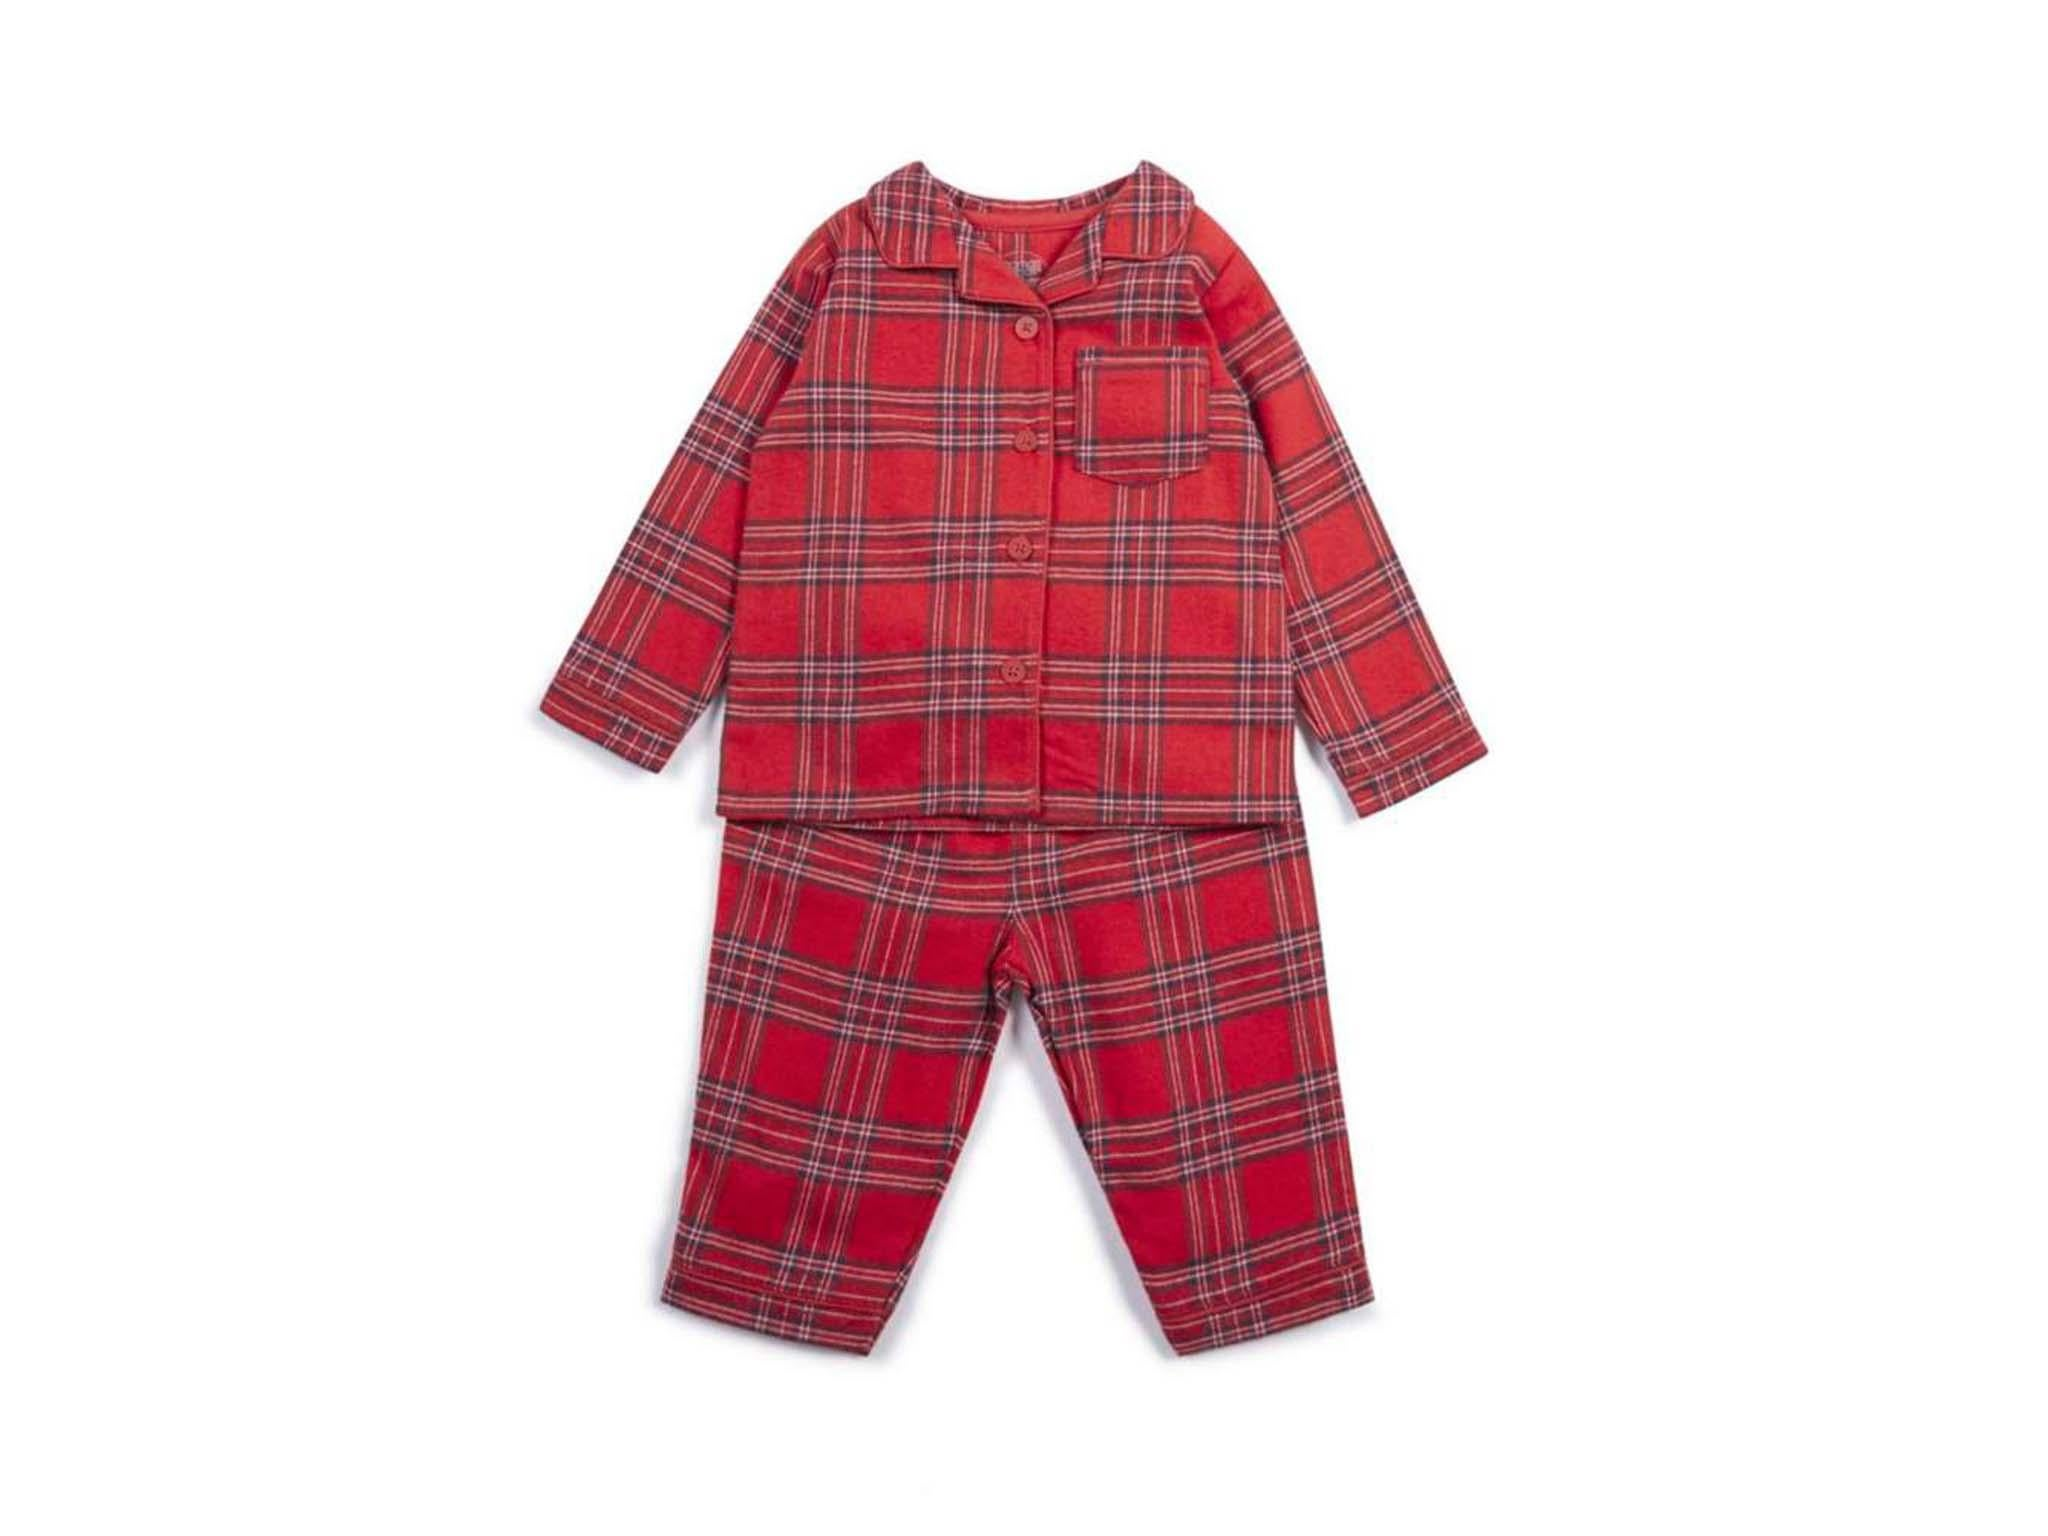 ywbtuechars Cute Christmas Family Outfits Long Sleeve Kids Baby Man Woman Pajamas Sleepwear Night Clothes Nightgown Baby-100